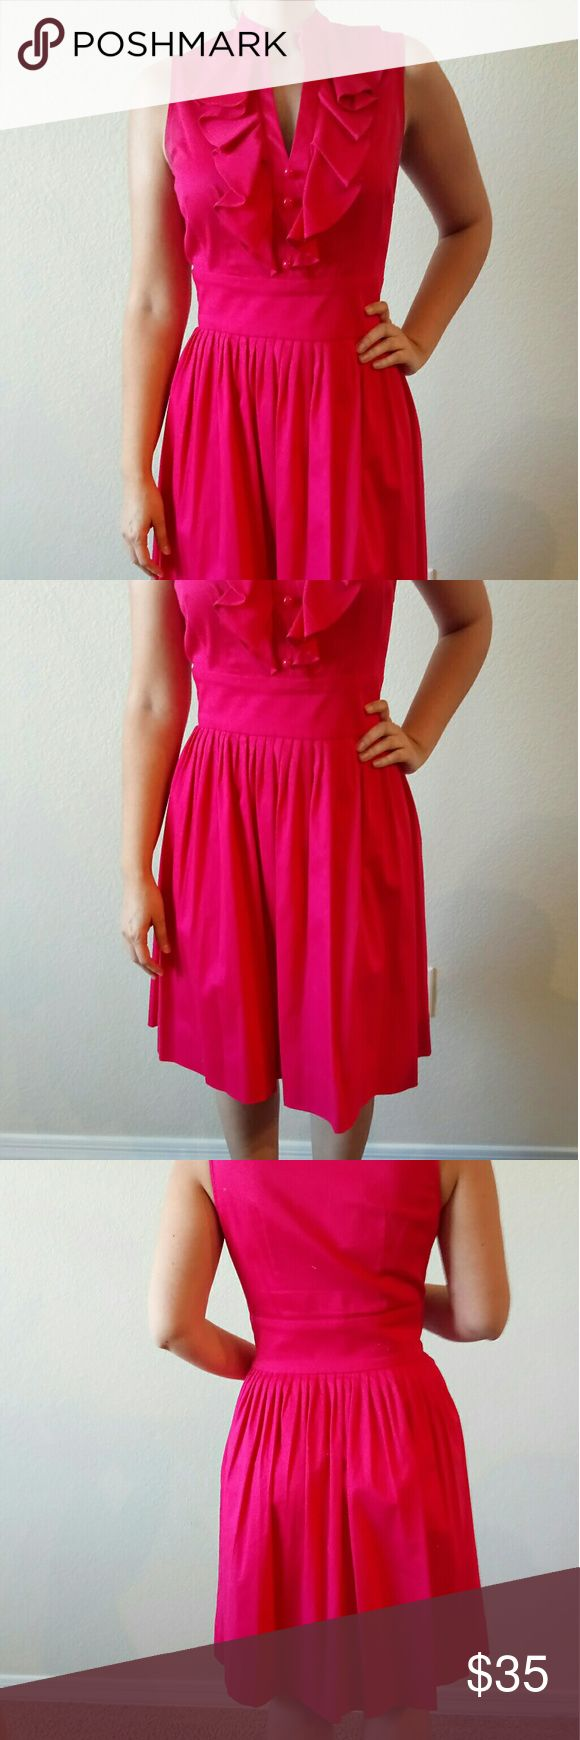 Eliza J Hot Pink Dress Size 4 Adorable hot pink dress with ruffle detail and hot pink buttons at the chest and a gathered skirt Eliza J Dresses Midi